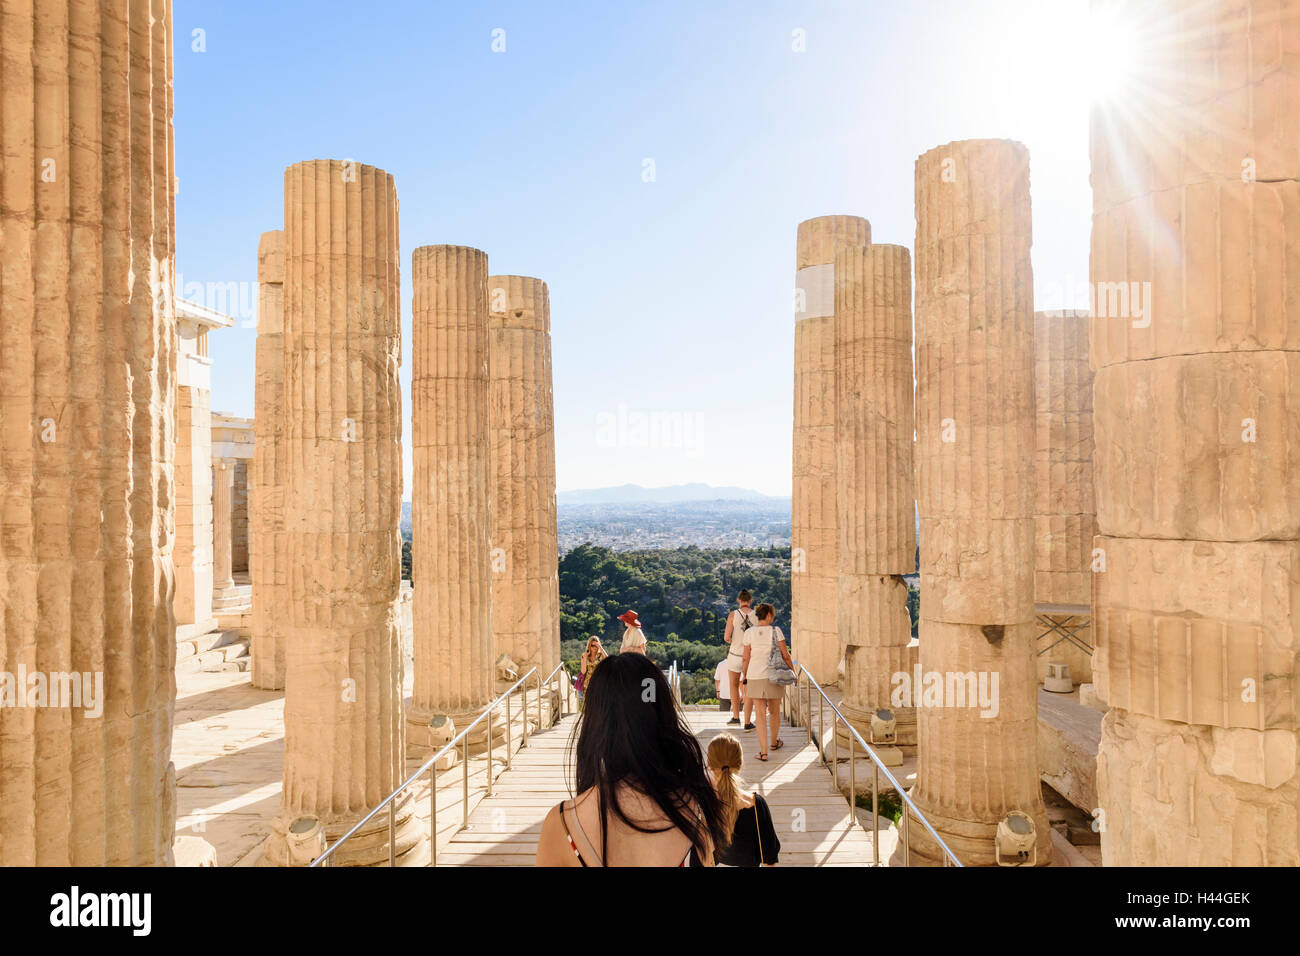 Sun shines on the columns of the Propylaea, the grand entrance to the Acropolis, Athens, Greece Stock Photo